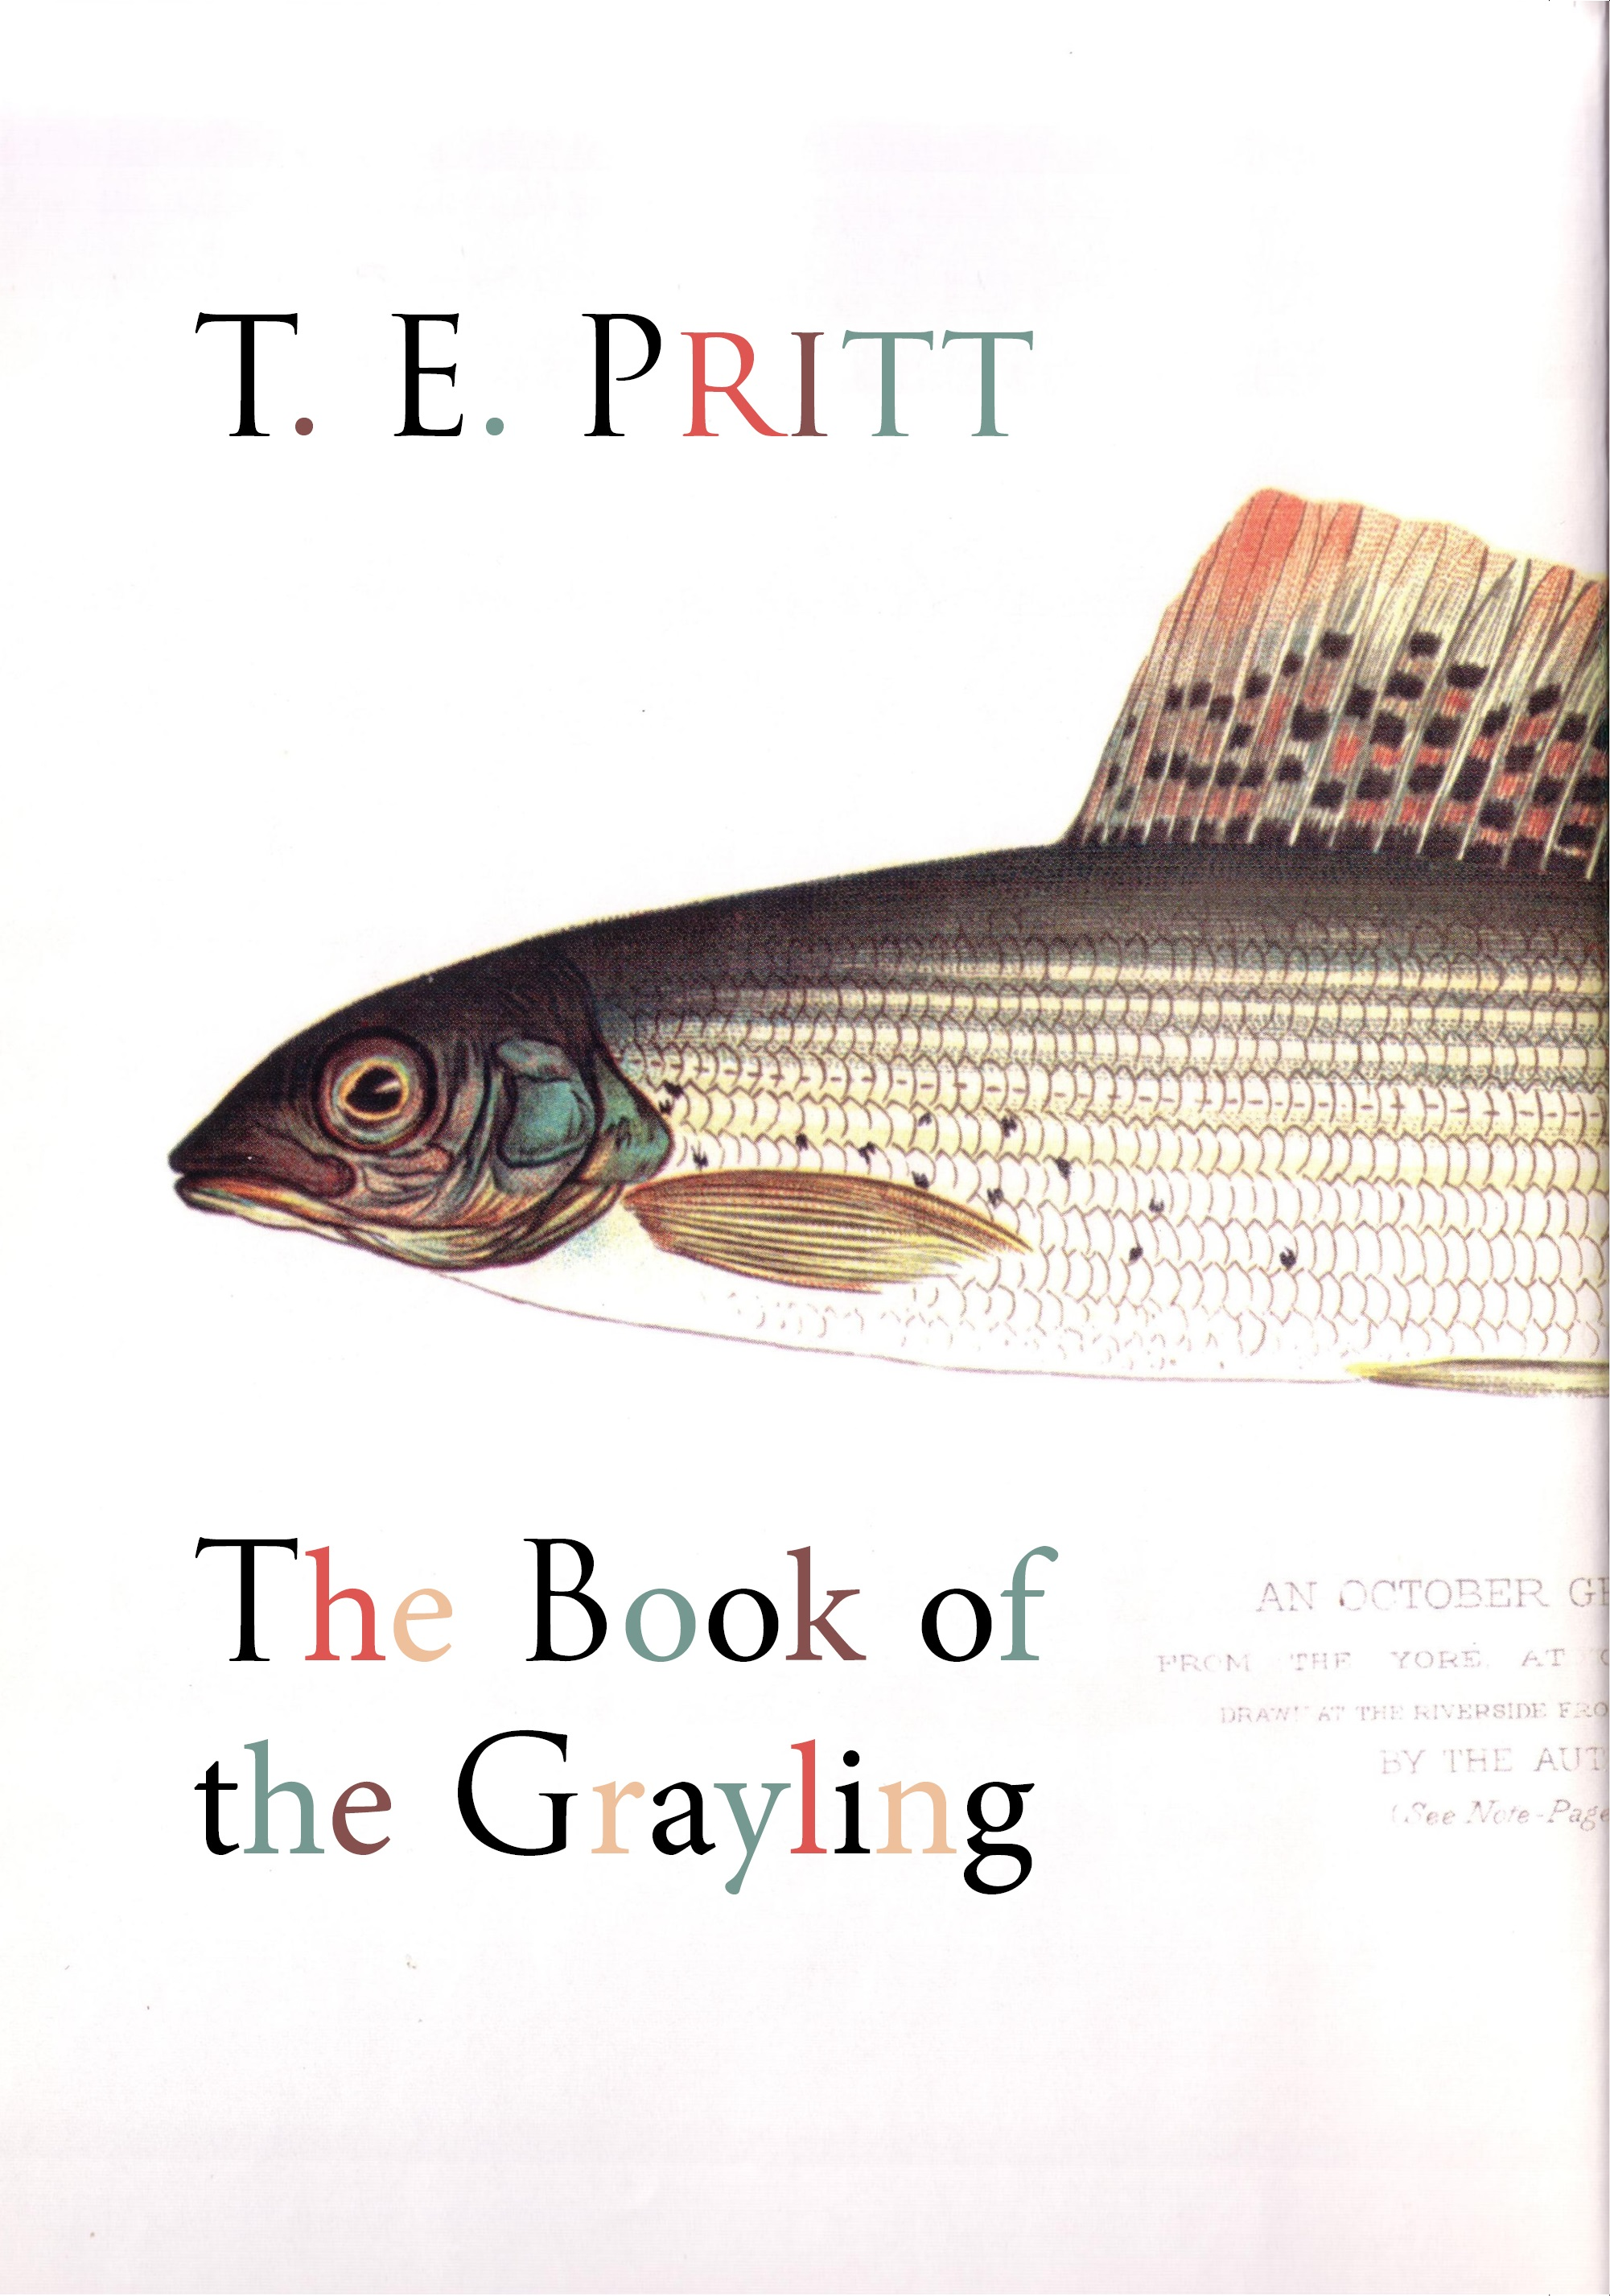 The Book of Grayling